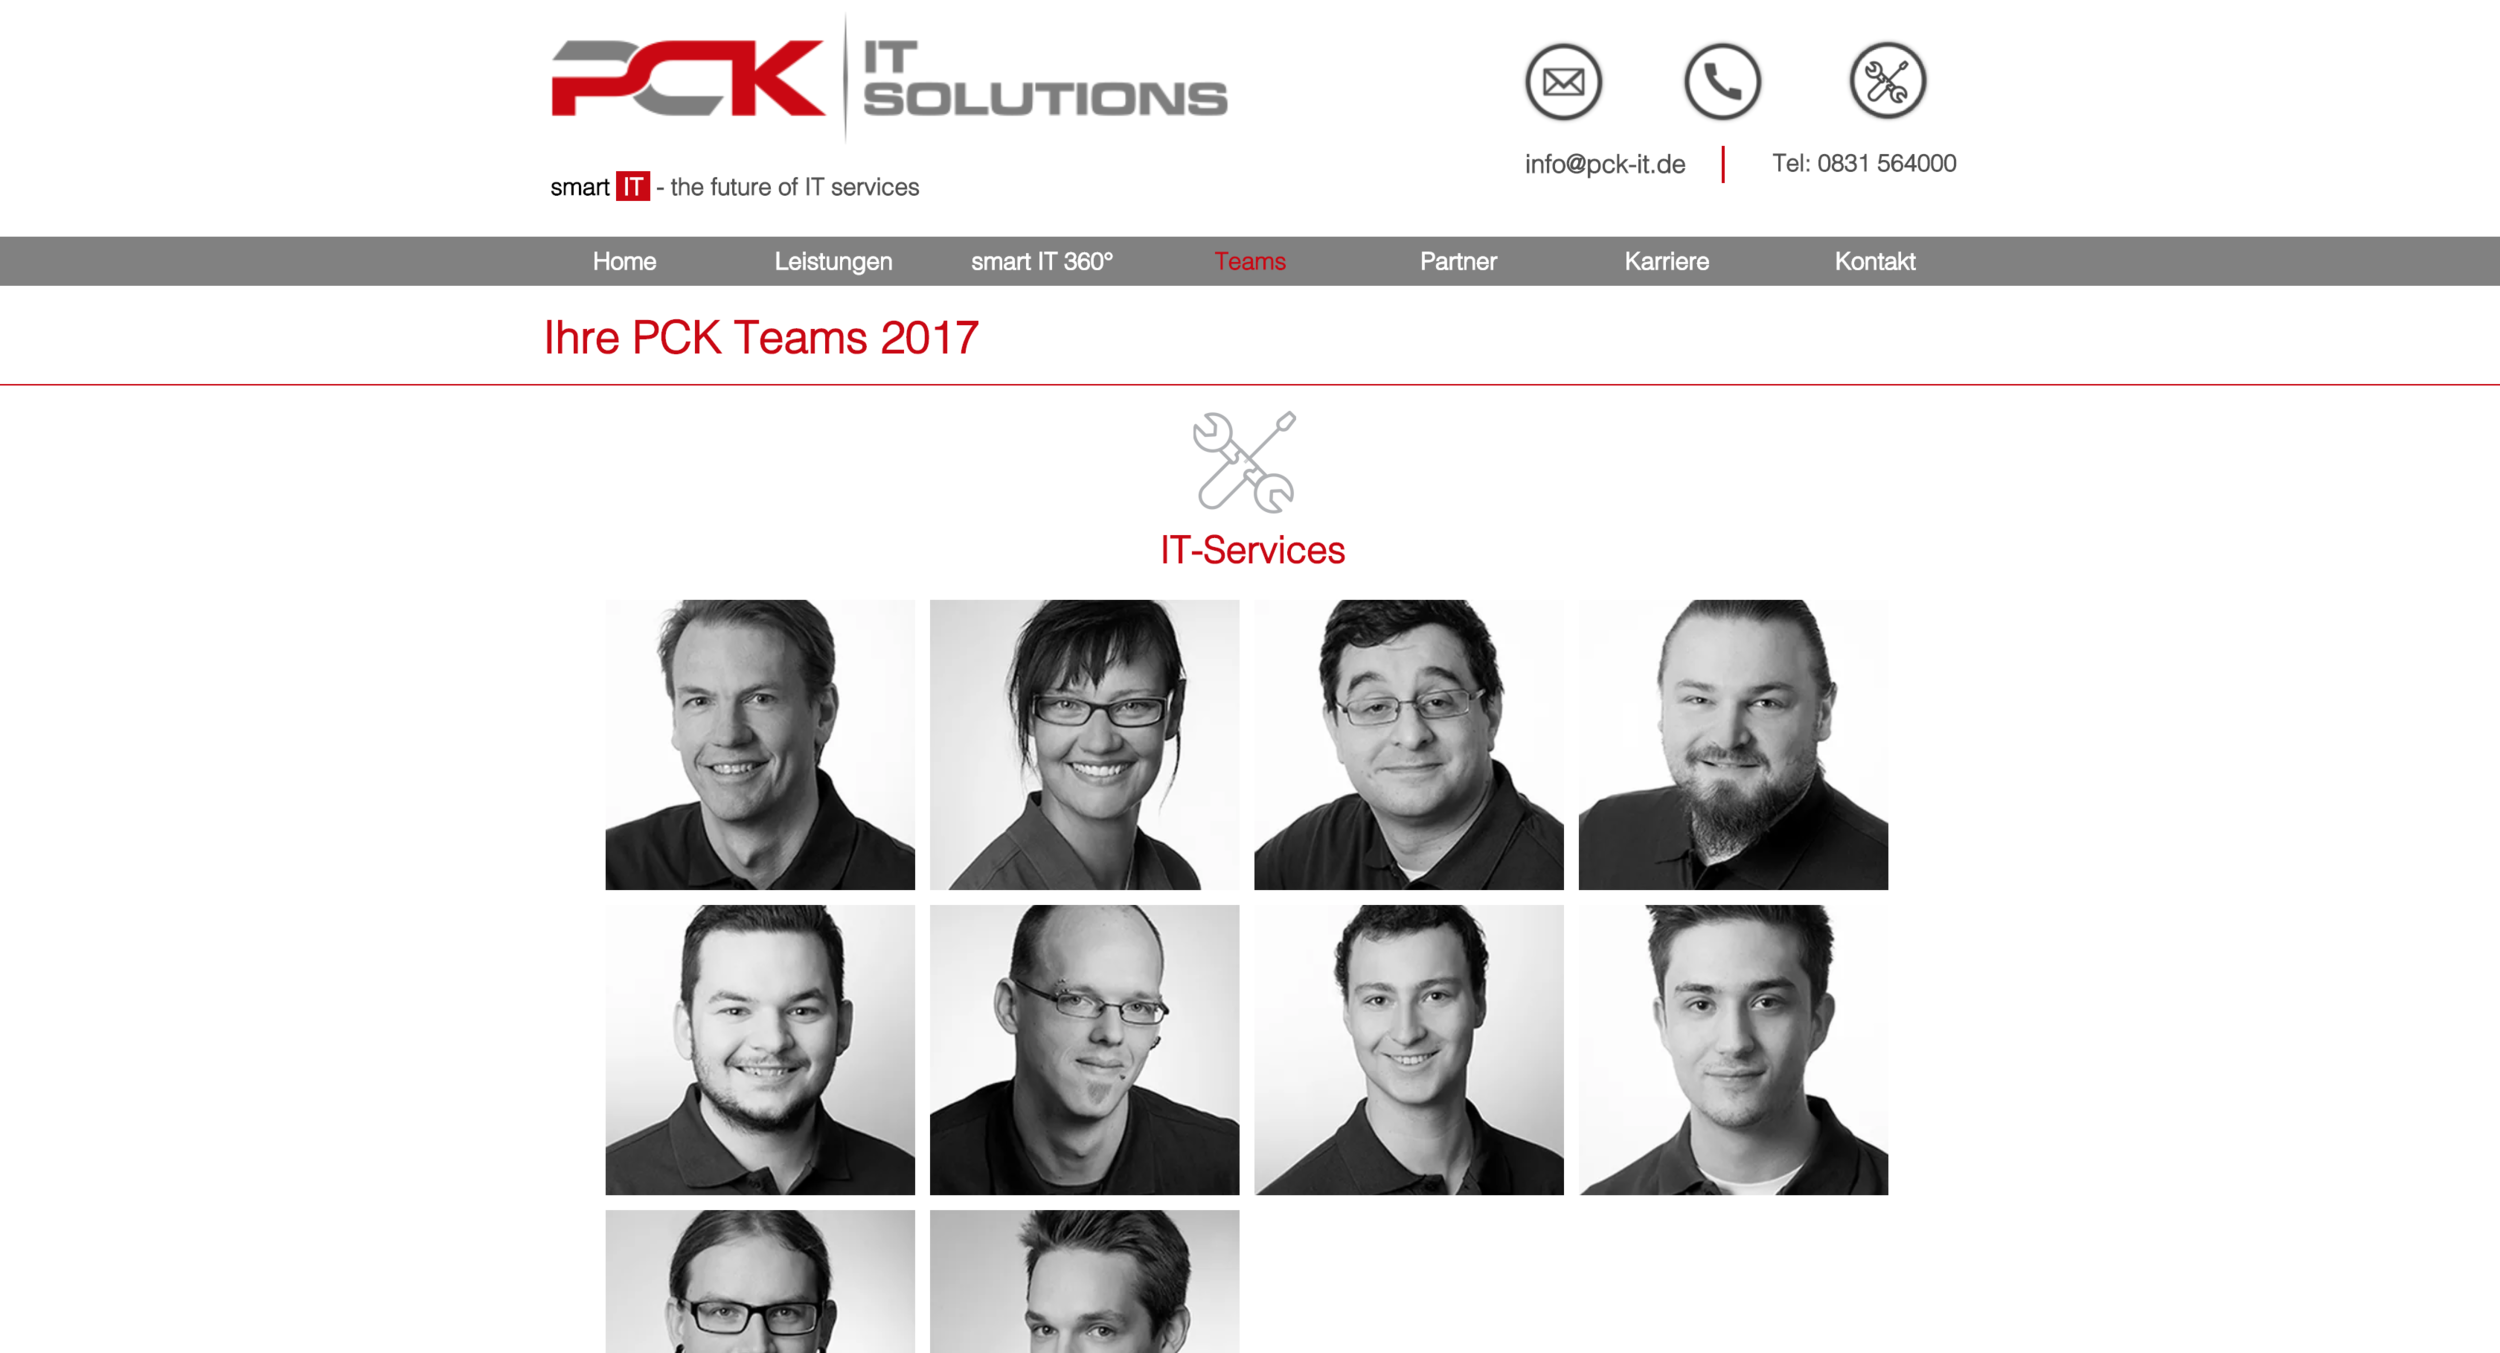 pck_it_solutions.png